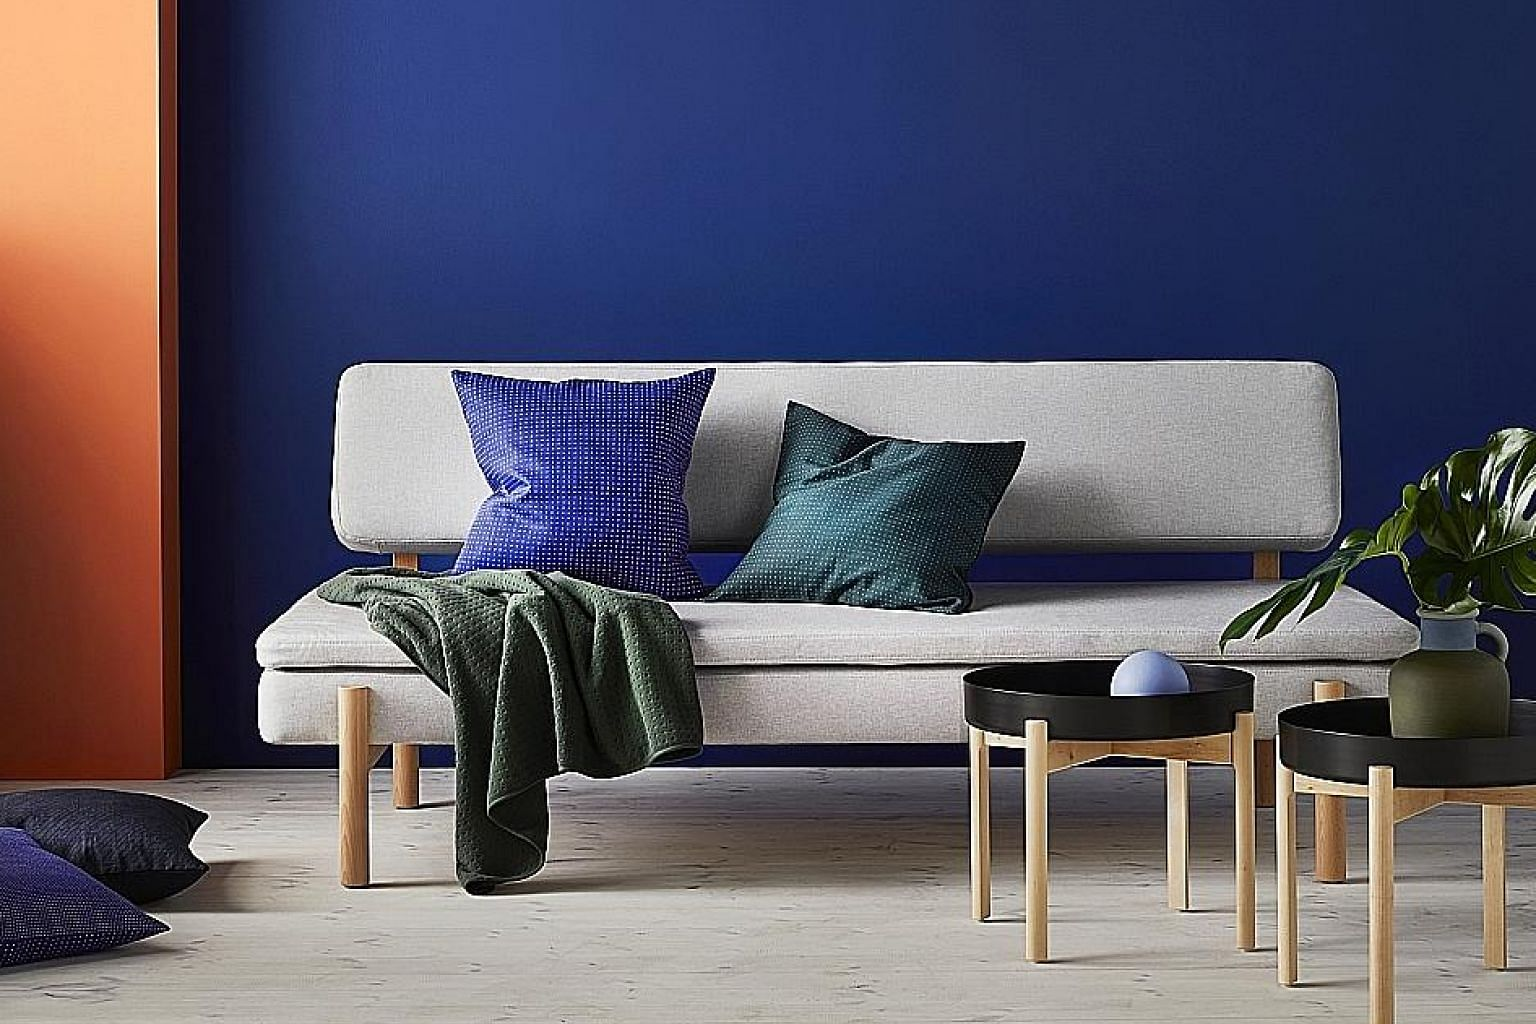 New designs of Ikea's Frakta bag and a sofa (above) from the Ypperlig collection.